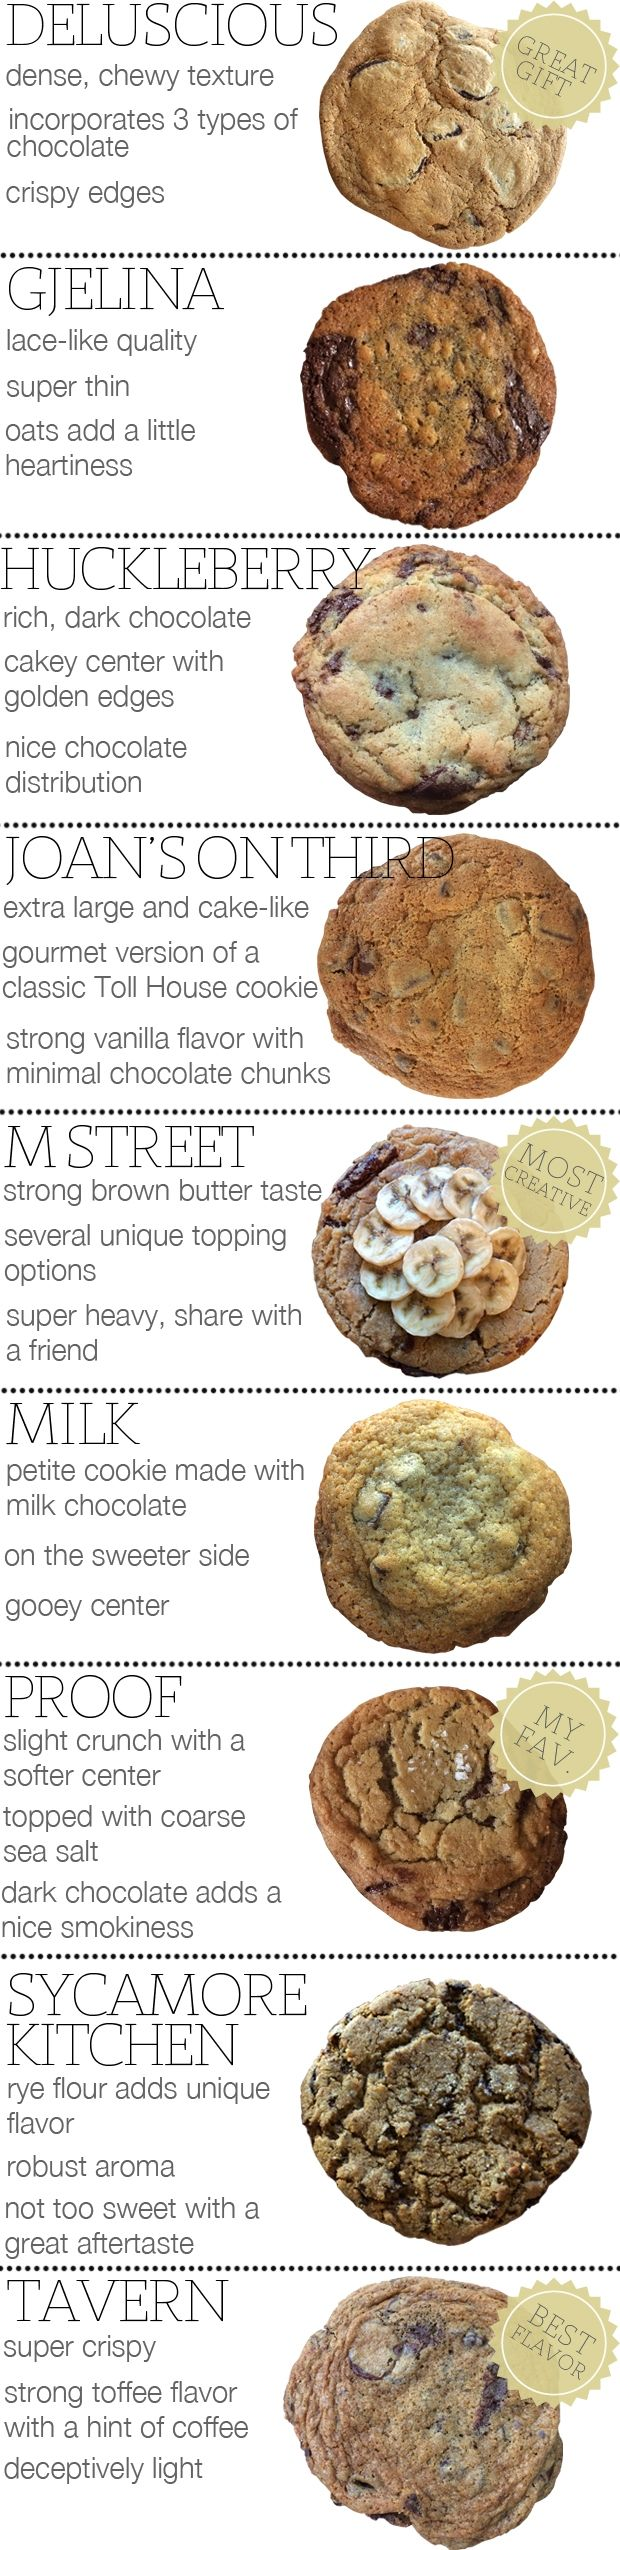 the best chocolate chip cookies in LA!